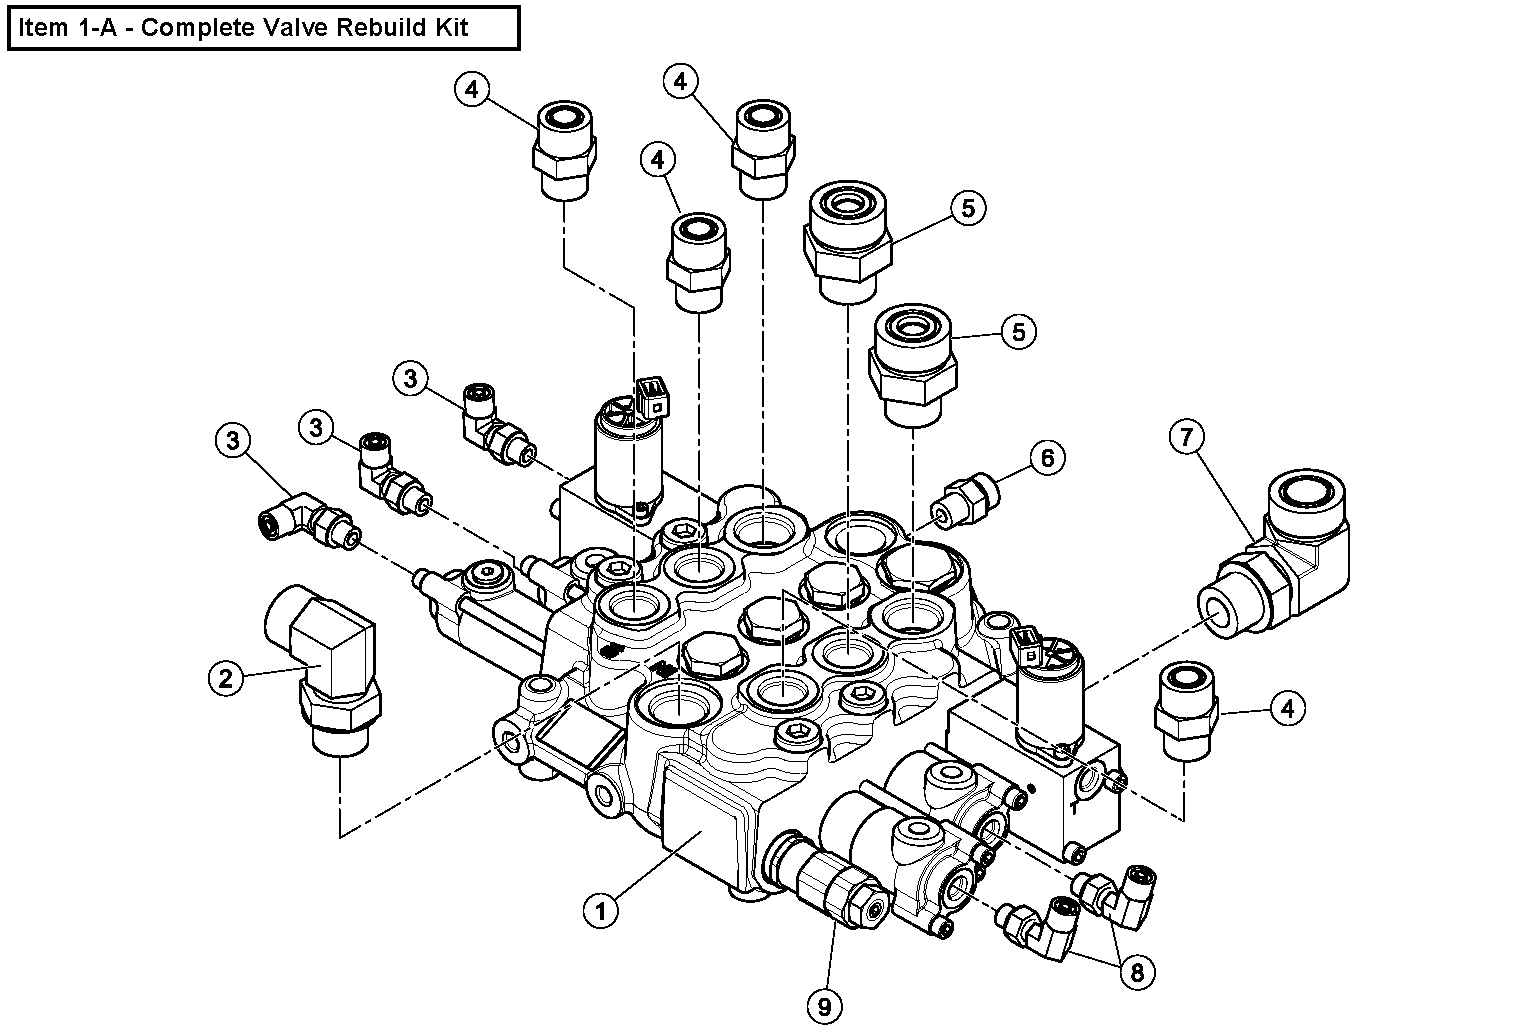 Diagram 15-A Lift Arm Control Valve Assembly